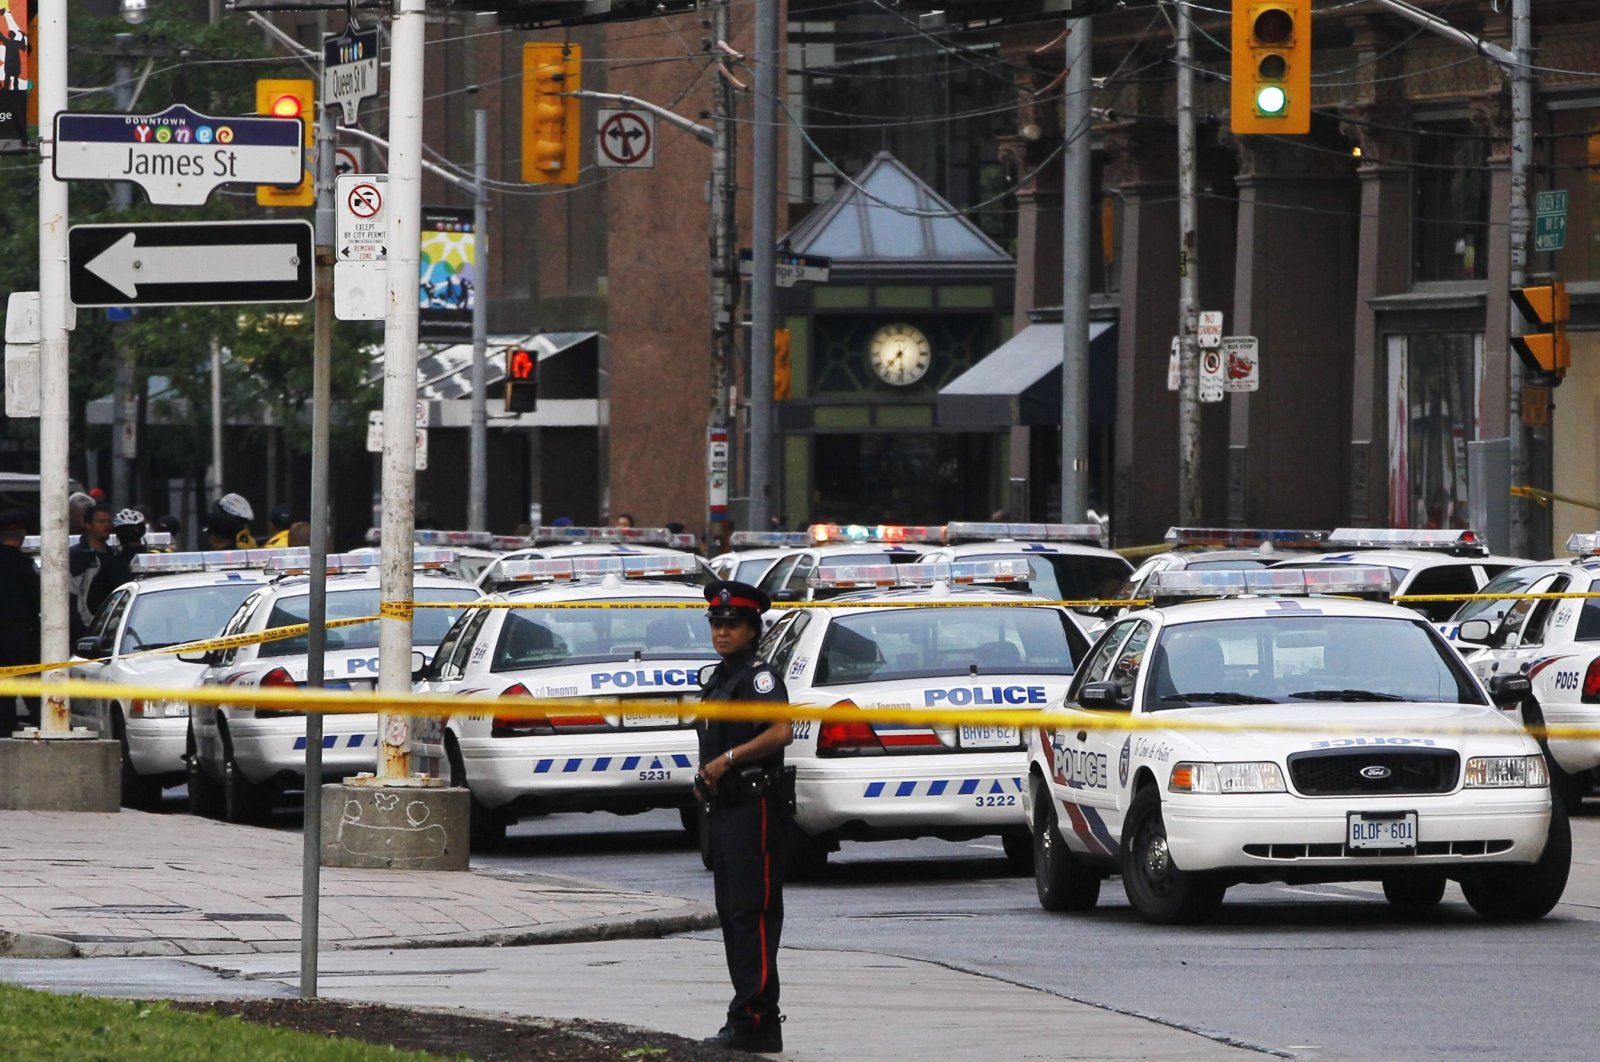 A police officer stands in front of police cars at the Toronto Eaton Centre shopping mall in Toronto, Canada, June 2, 2012. (Reuters Photo)